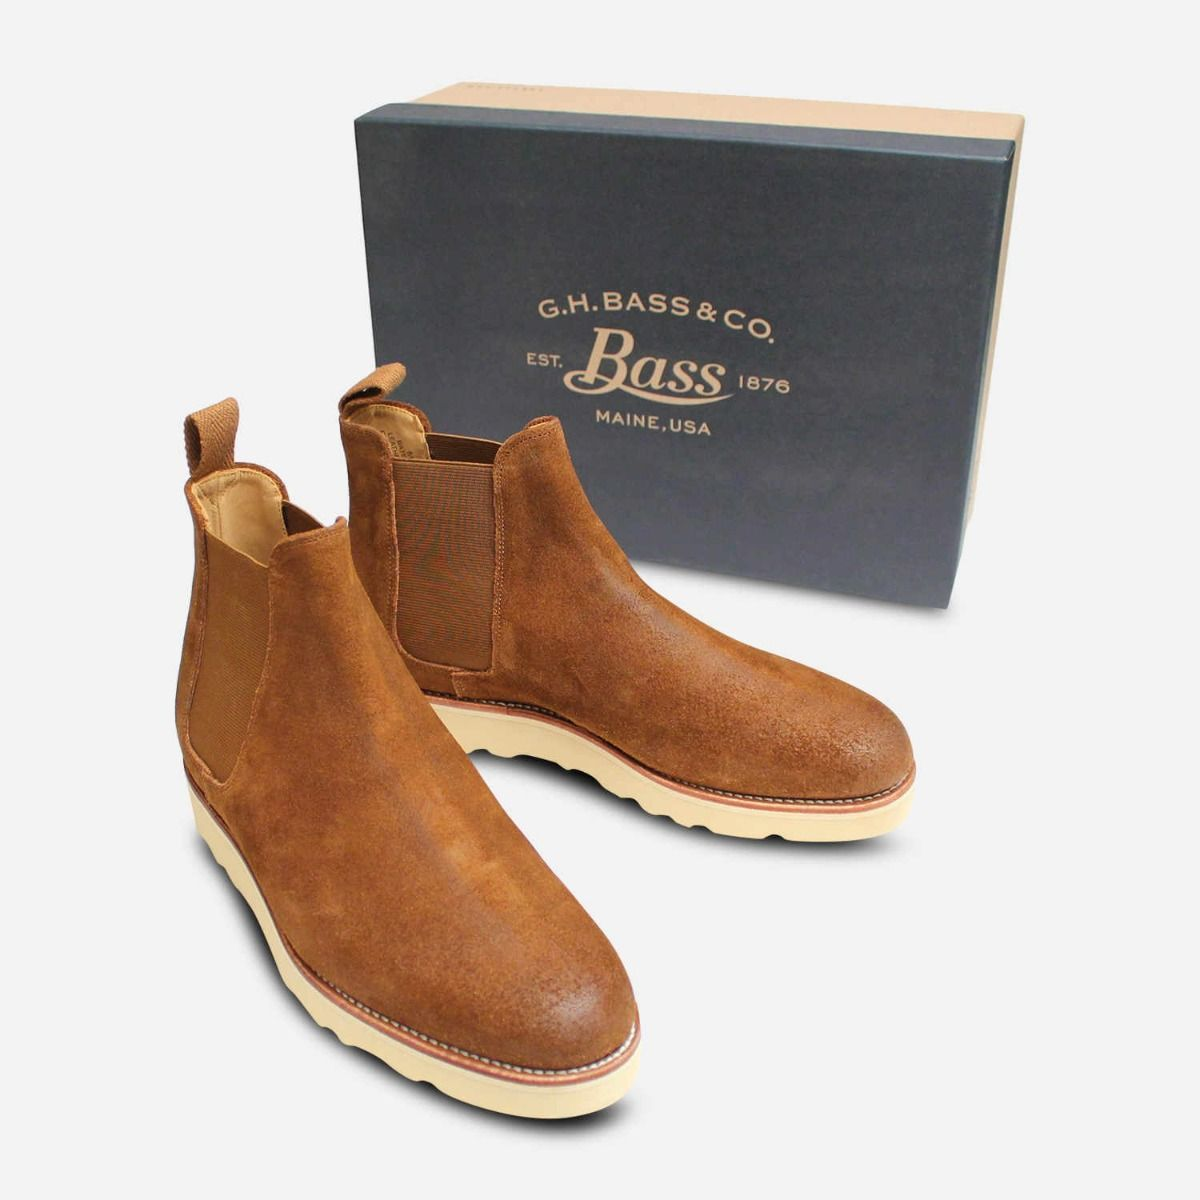 Designer Bass Waxy Brown Suede Wedge Sole Chelsea Boots